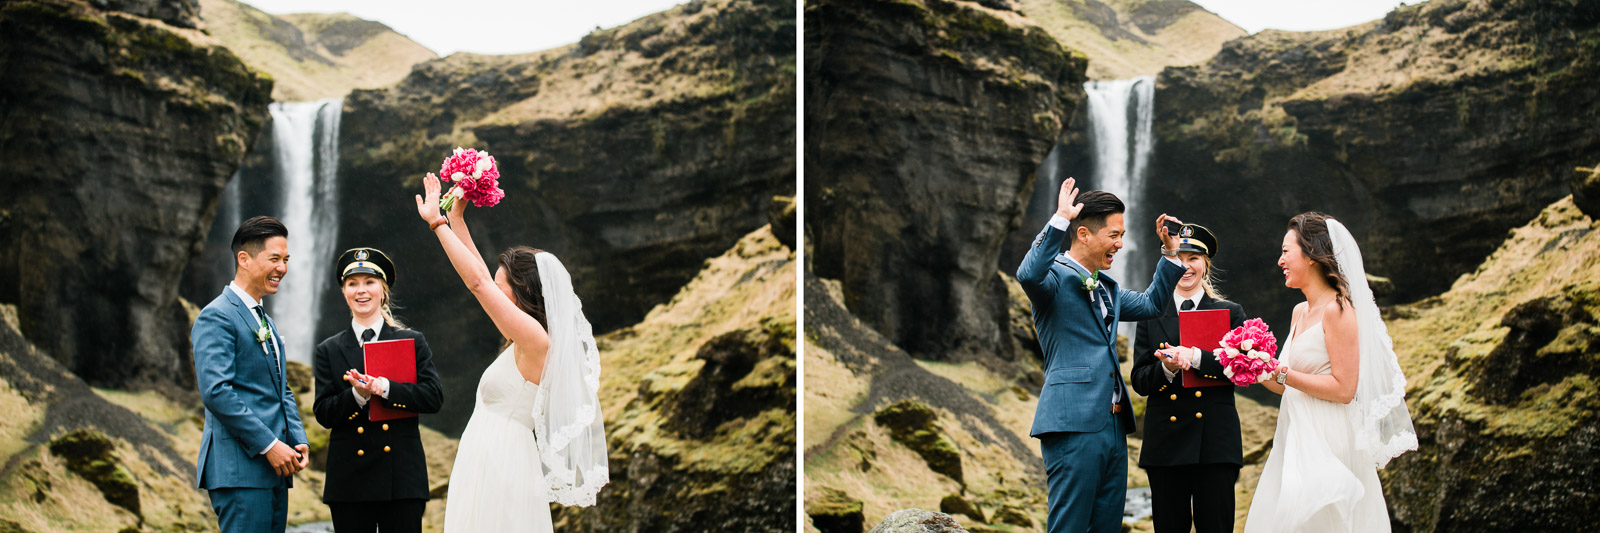 Jackie_Simon_Iceland_Elopement_Weddings_MJ_Studios-11